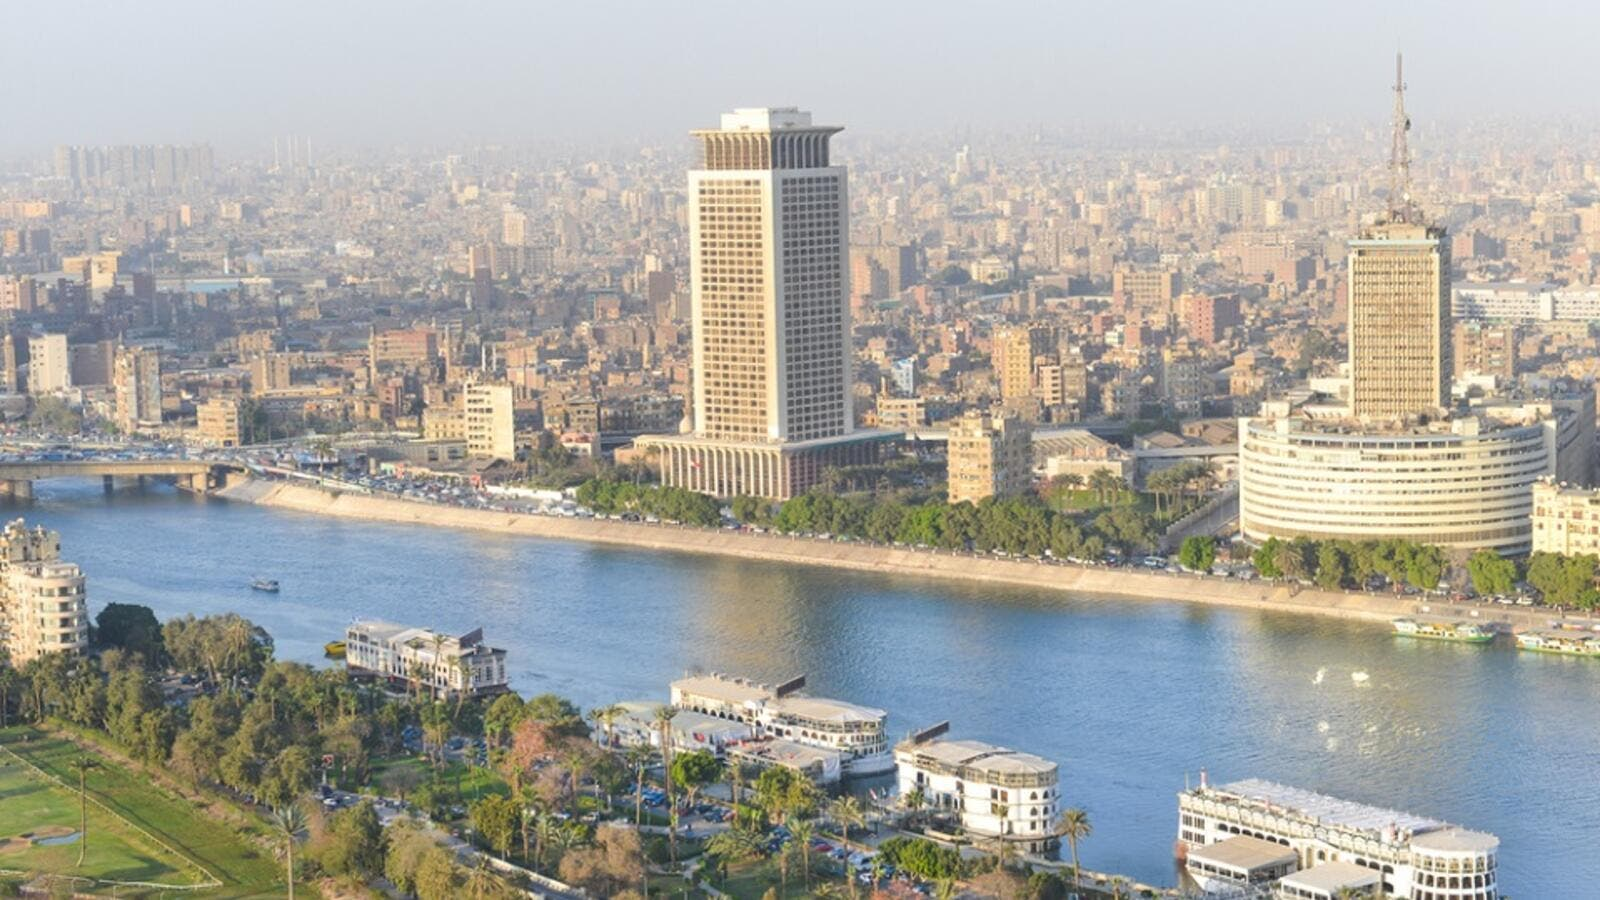 The Egyptians have since ancient times lived on some 6 percent of the country's area and governments have longed to expand it to 20 percent